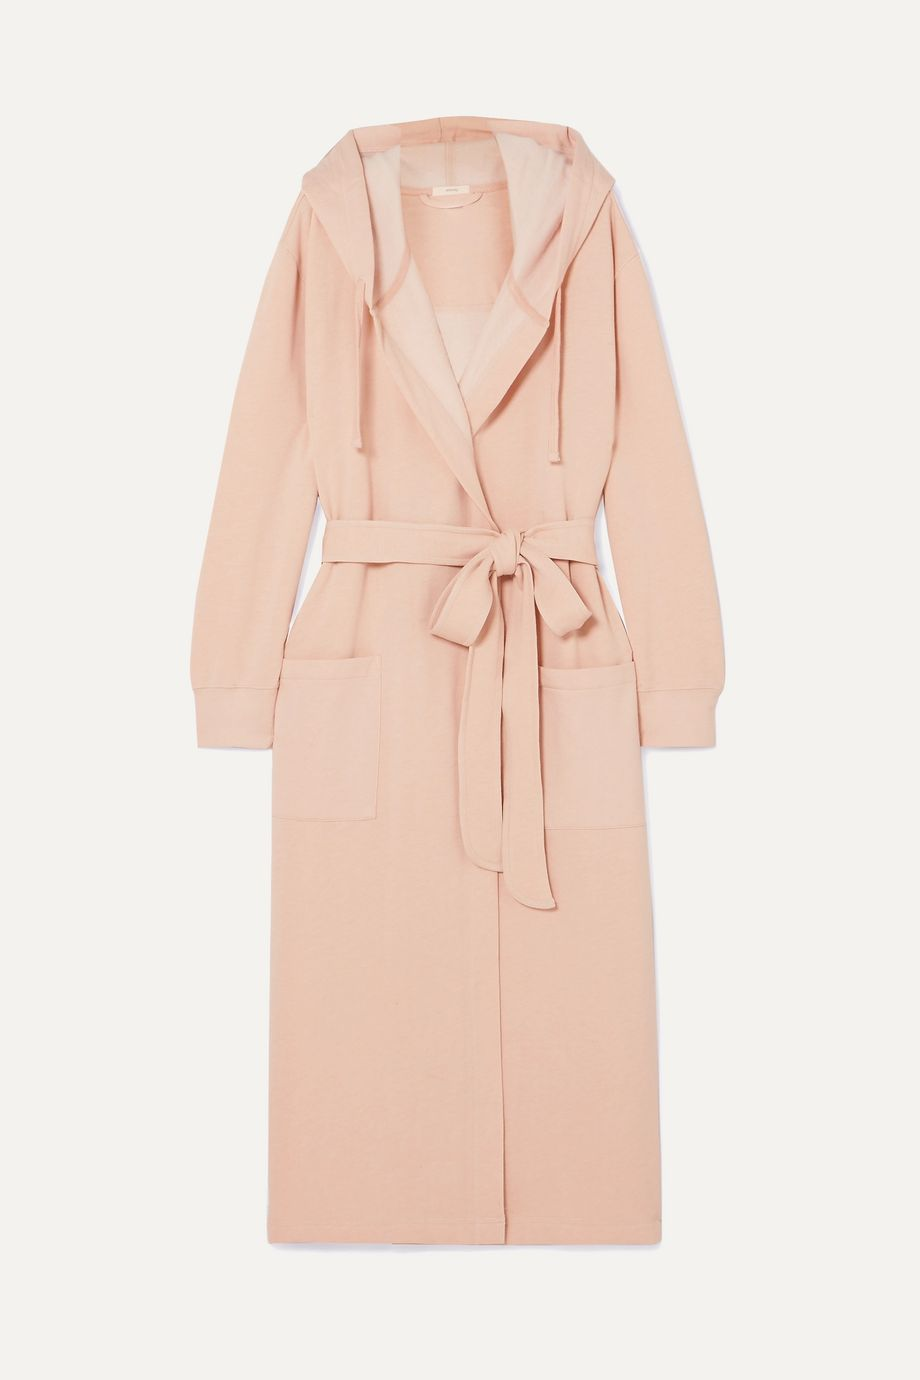 Eberjey Larken hooded cotton-blend robe